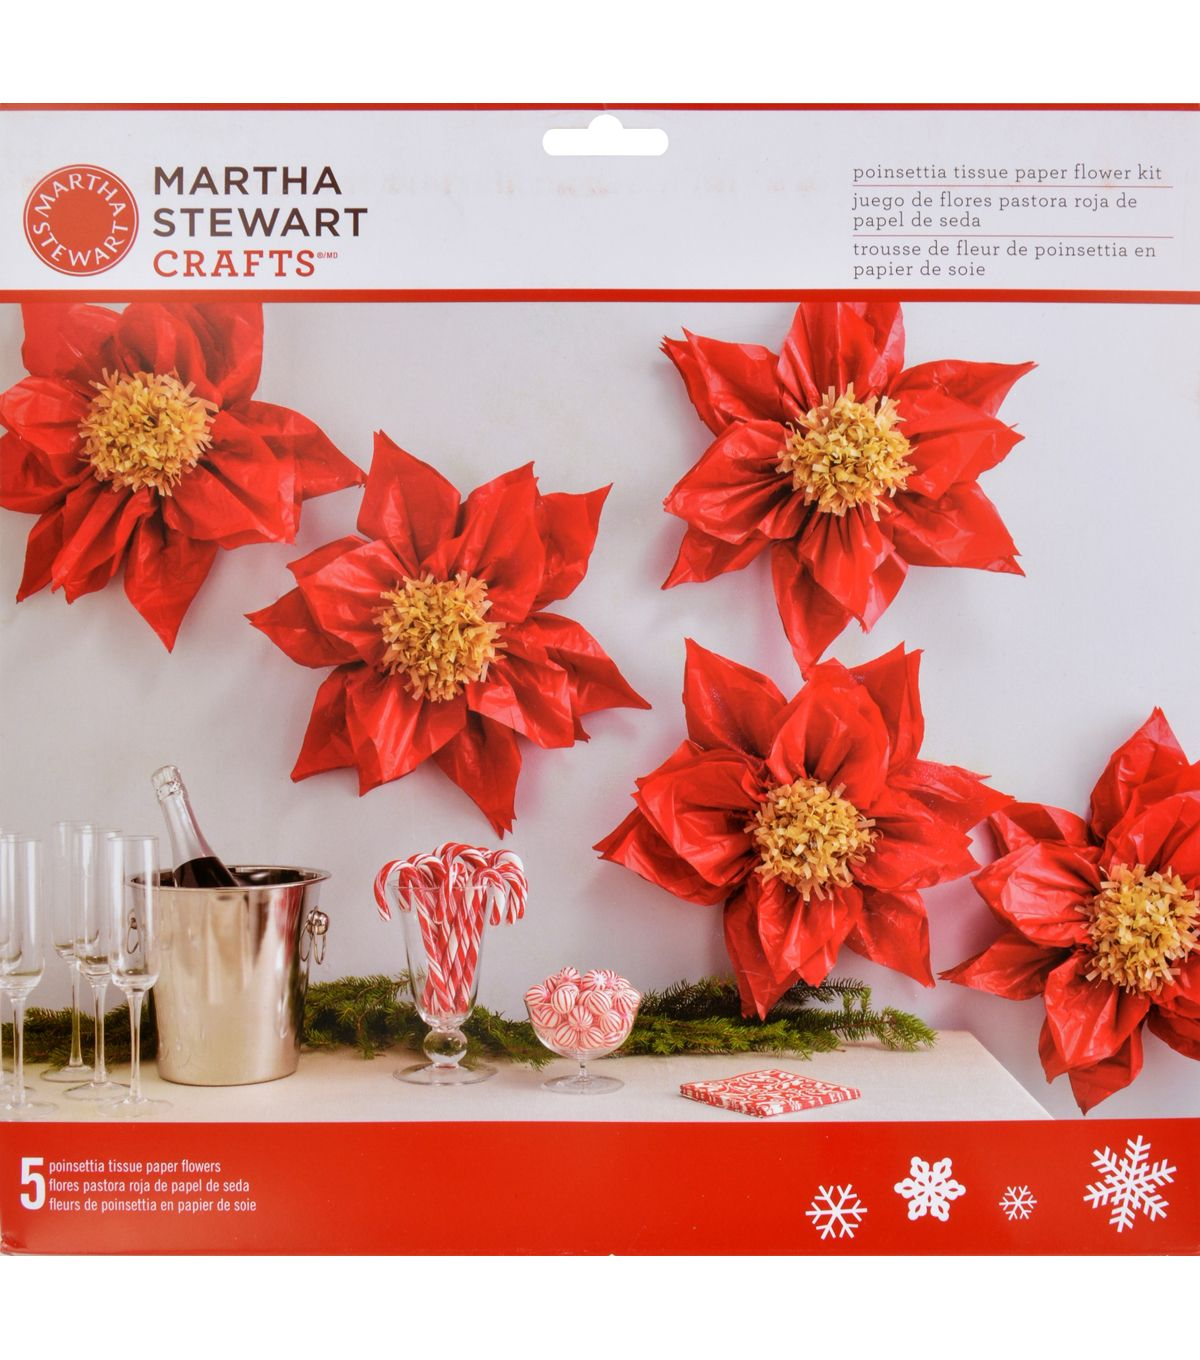 Martha stewart crafts red tissue paper flower kit holiday lodge martha stewart crafts red tissue paper flower kit holiday lodge mightylinksfo